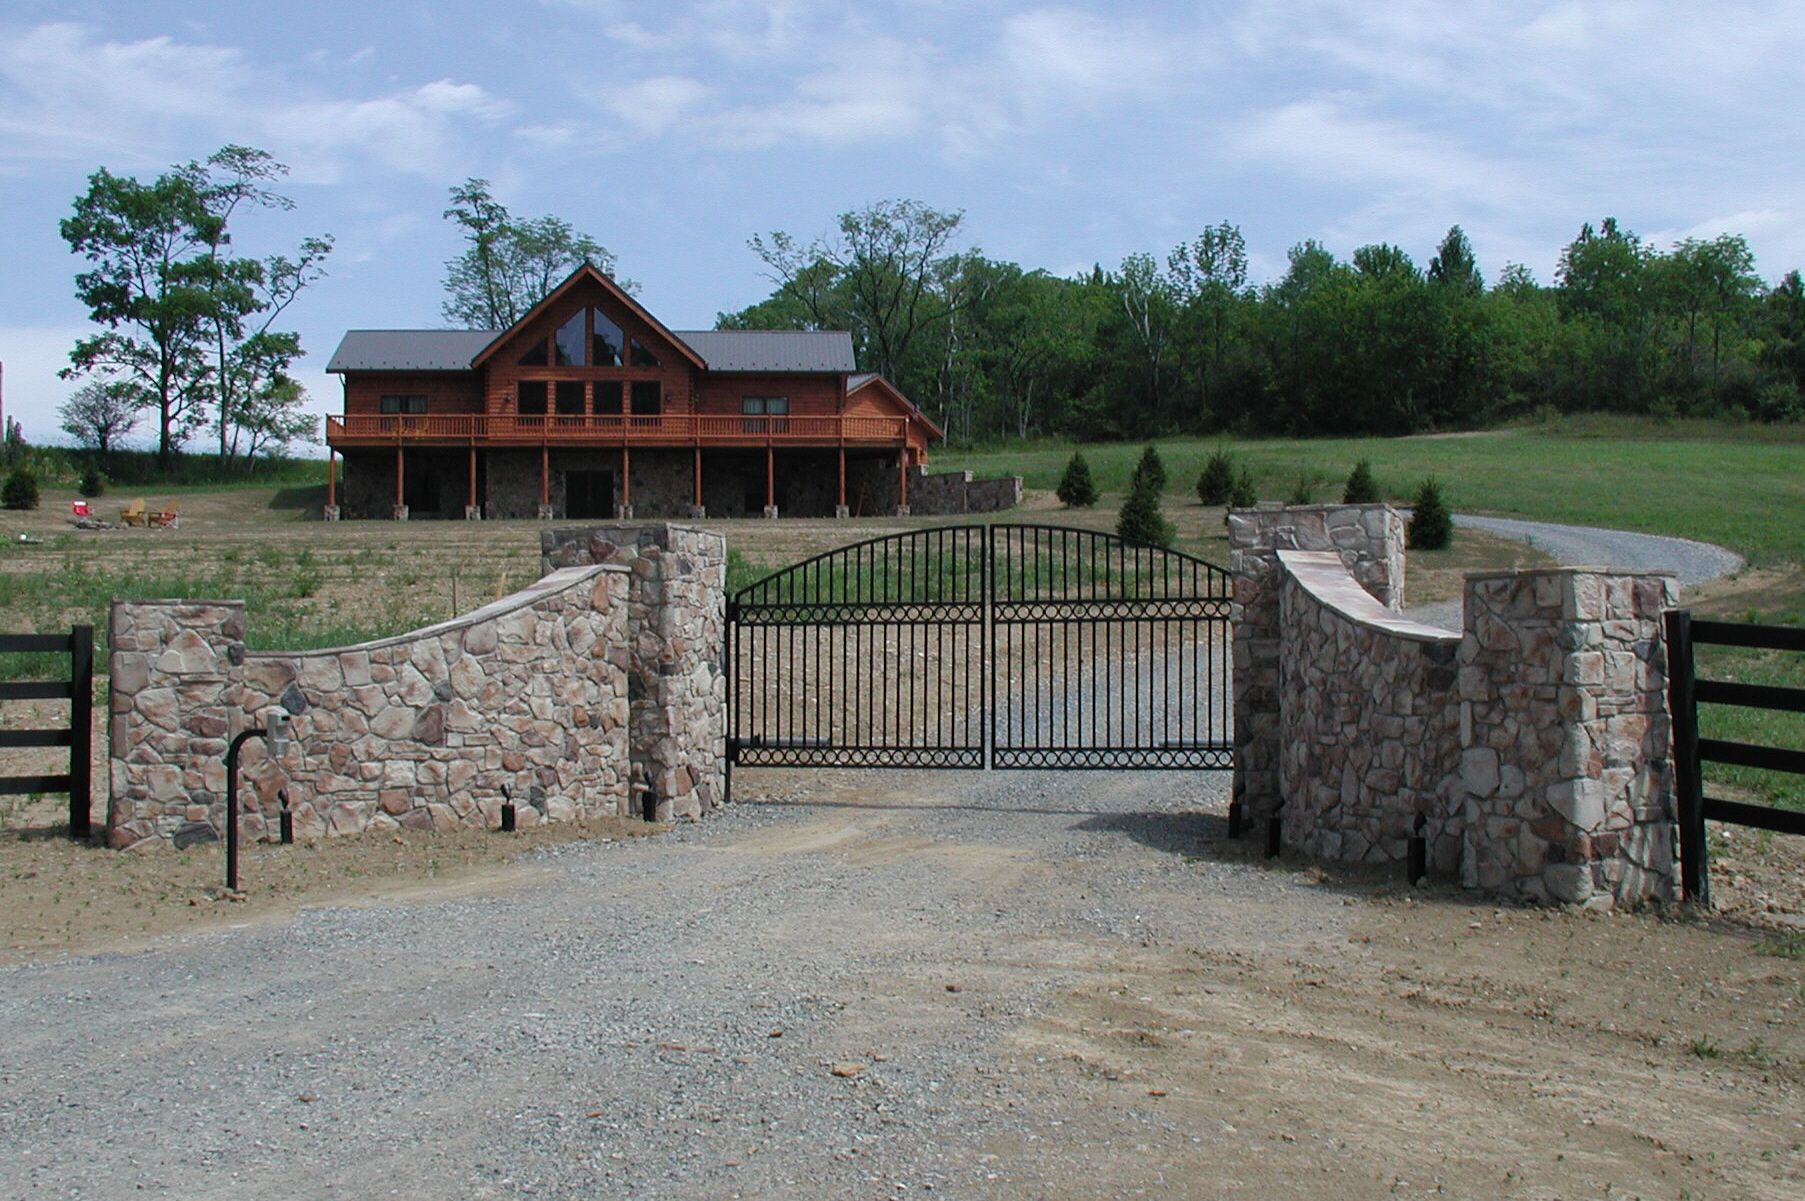 Compund walls and gate pinterest google gate design and gates - Beautiful Country Entrance Way And Gate